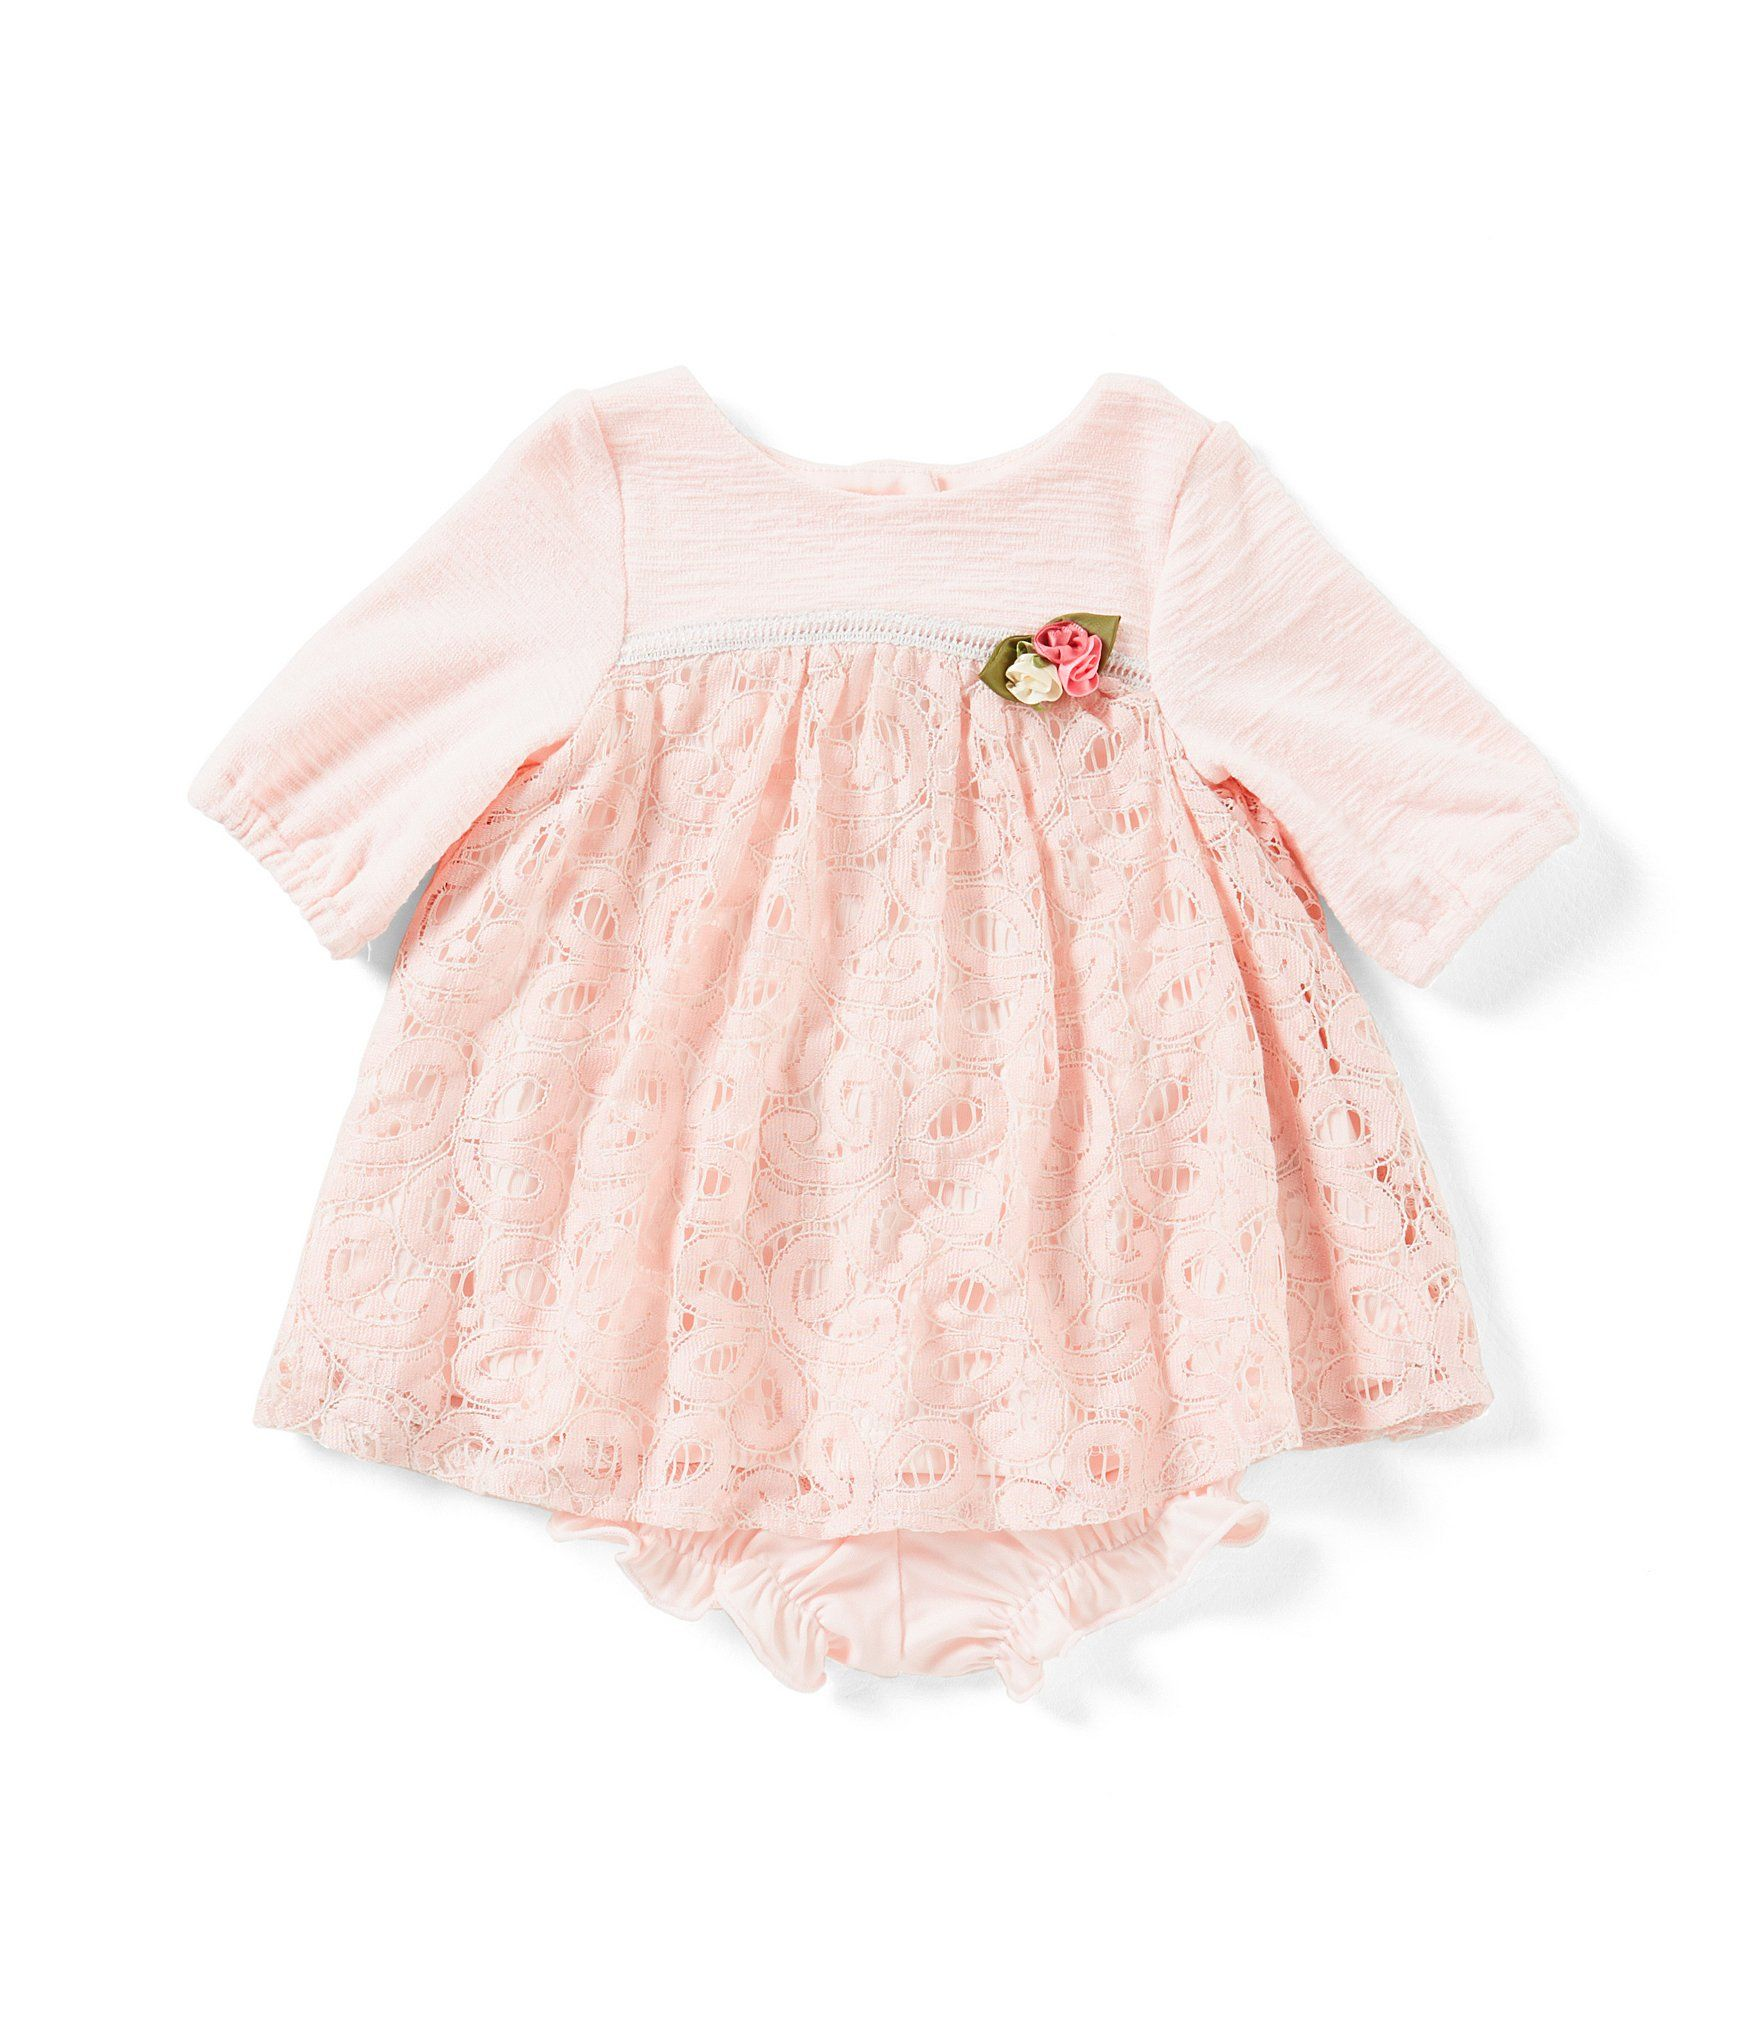 c69fa4fdaeb0e Shop for Laura Ashley London Baby Girls Newborn-24 Months Lace 3/4-Sleeve  Dress at Dillards.com. Visit Dillards.com to find clothing, accessories,  shoes, ...